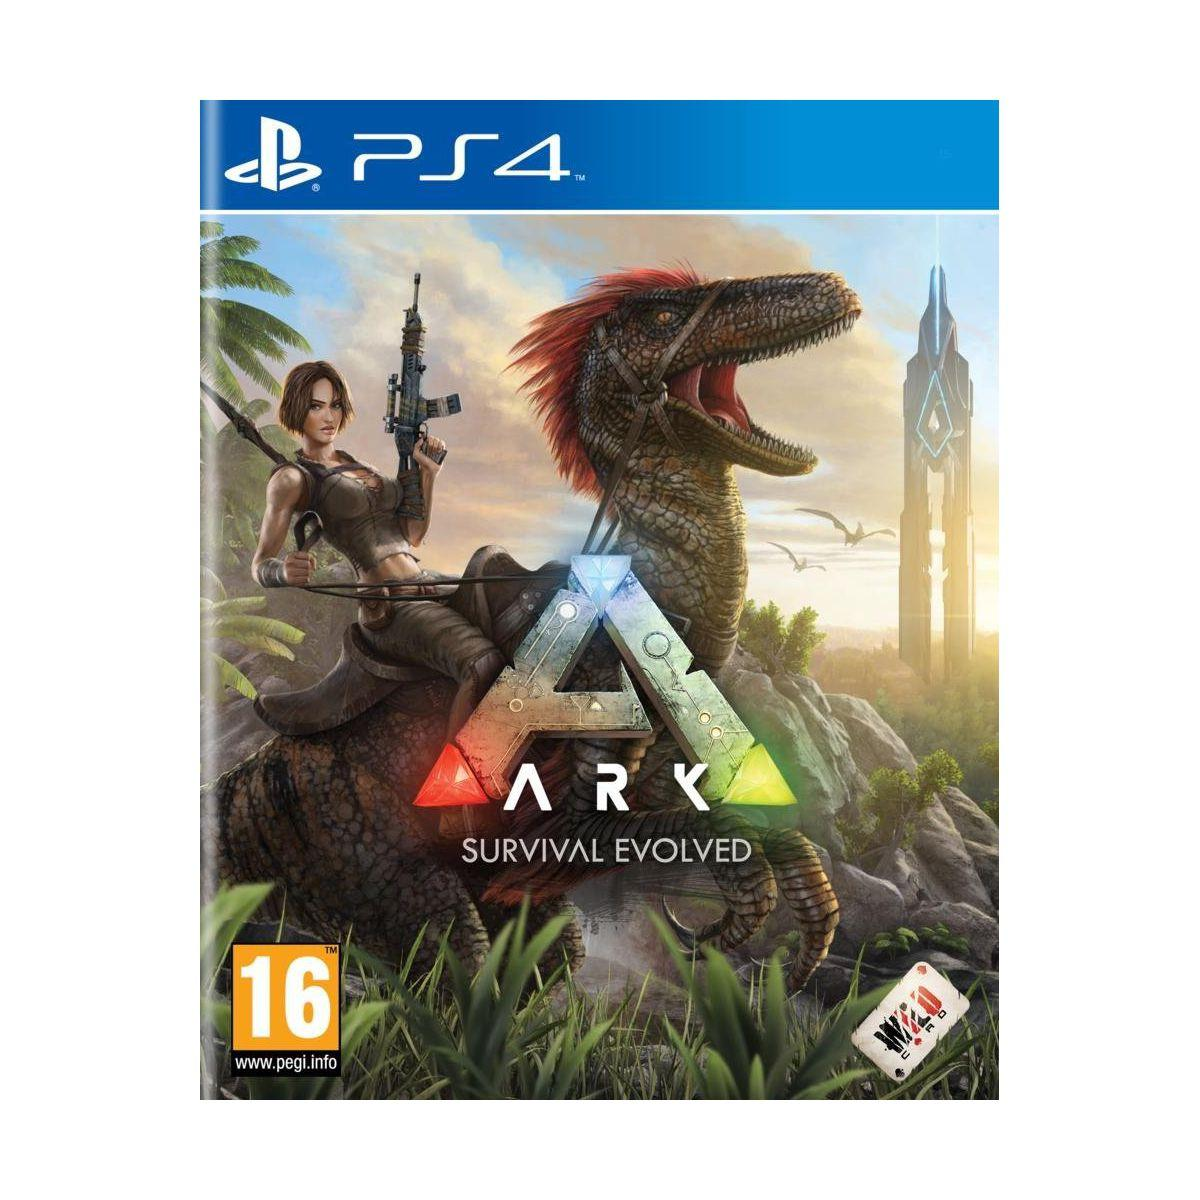 Jeu ps4 koch media ark survivol evolved - 2% de remise immédiate avec le code : cool2 (photo)